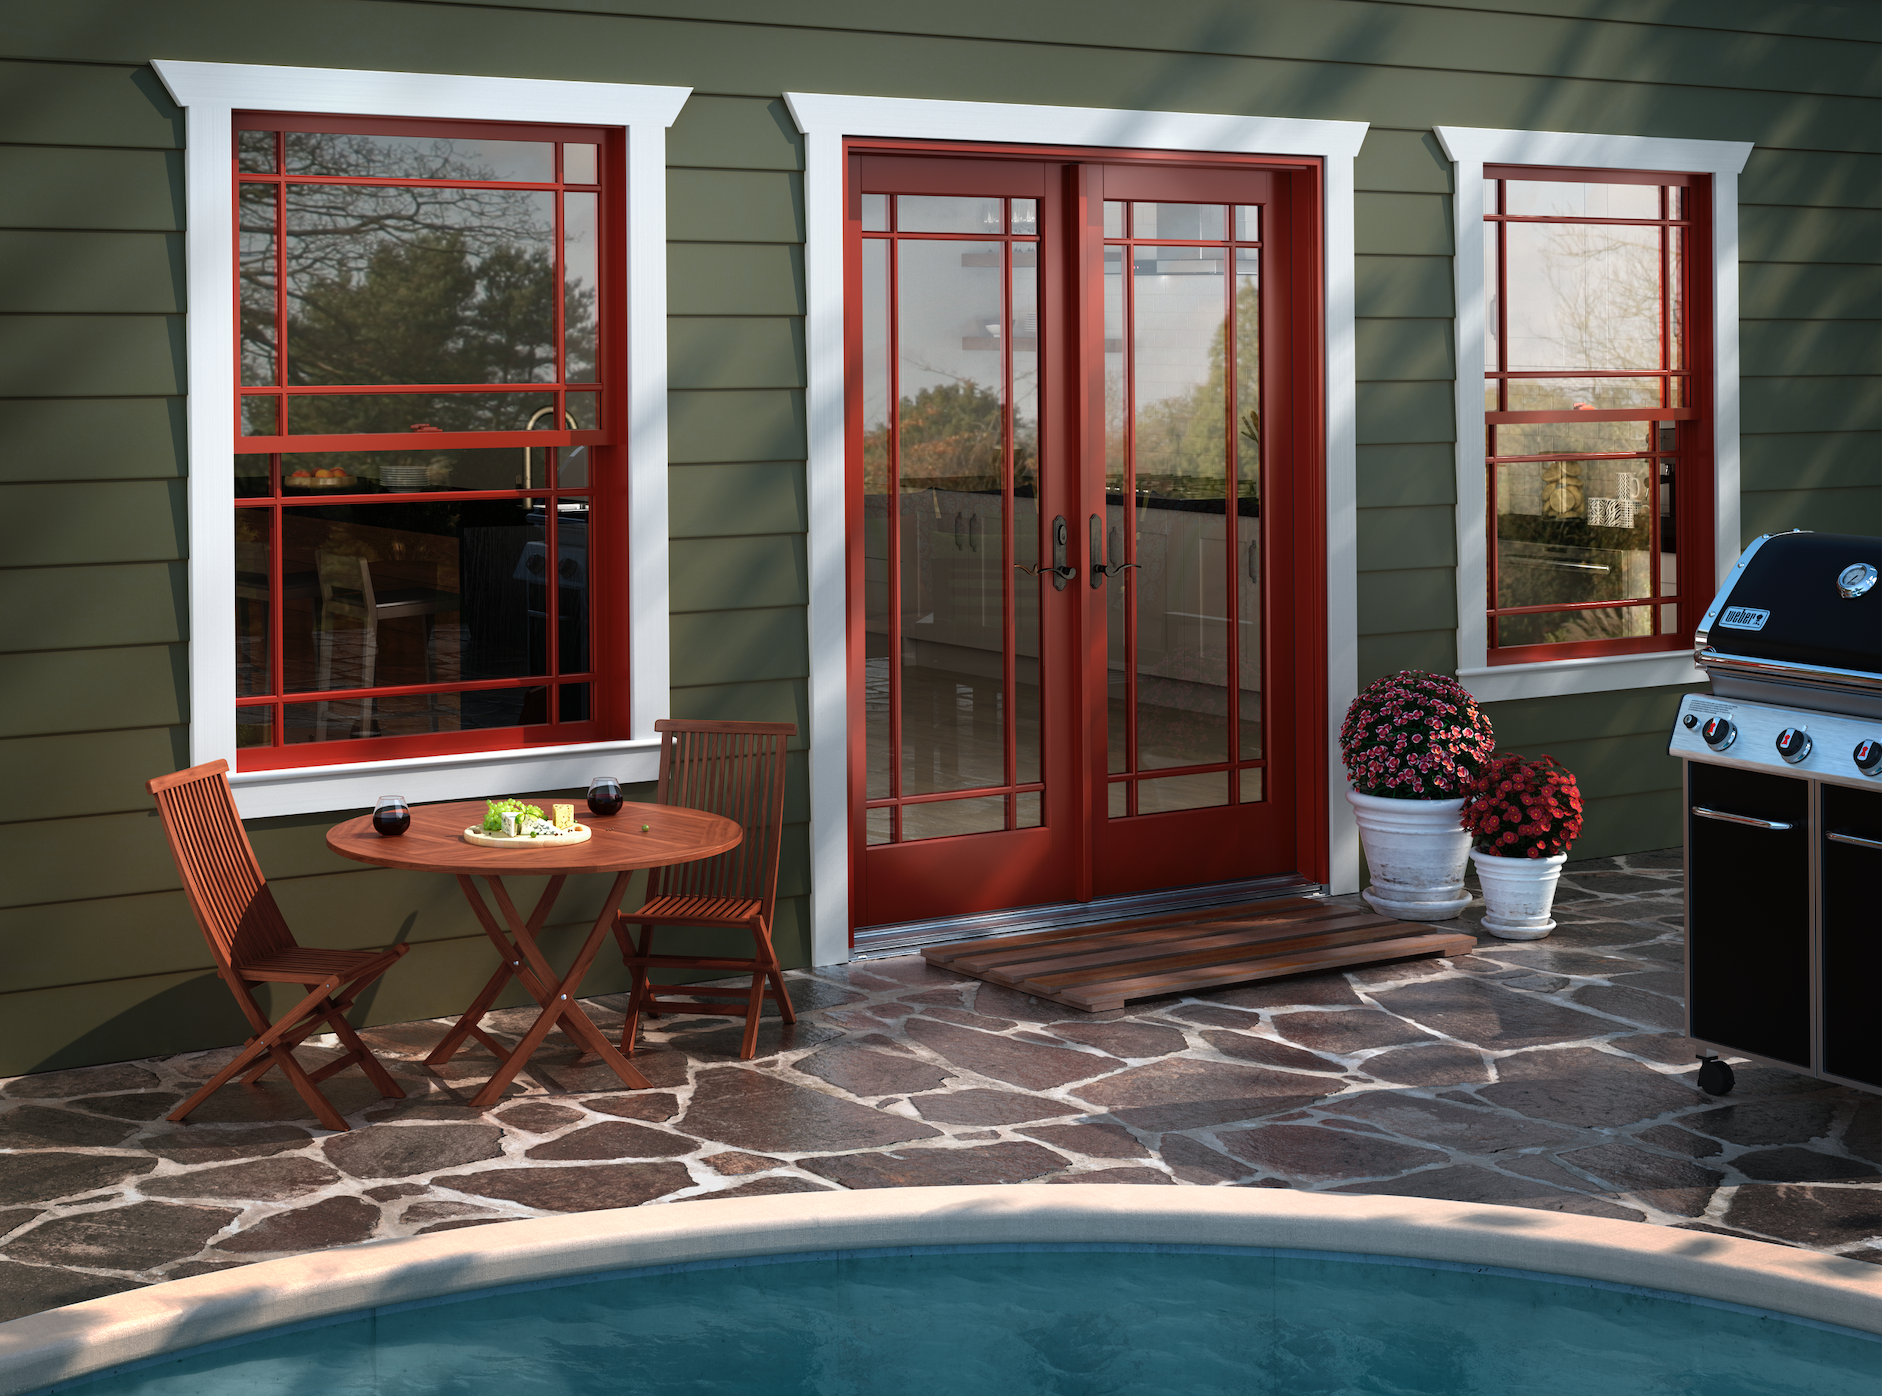 French door leading out to a home's outdoor area with a pool